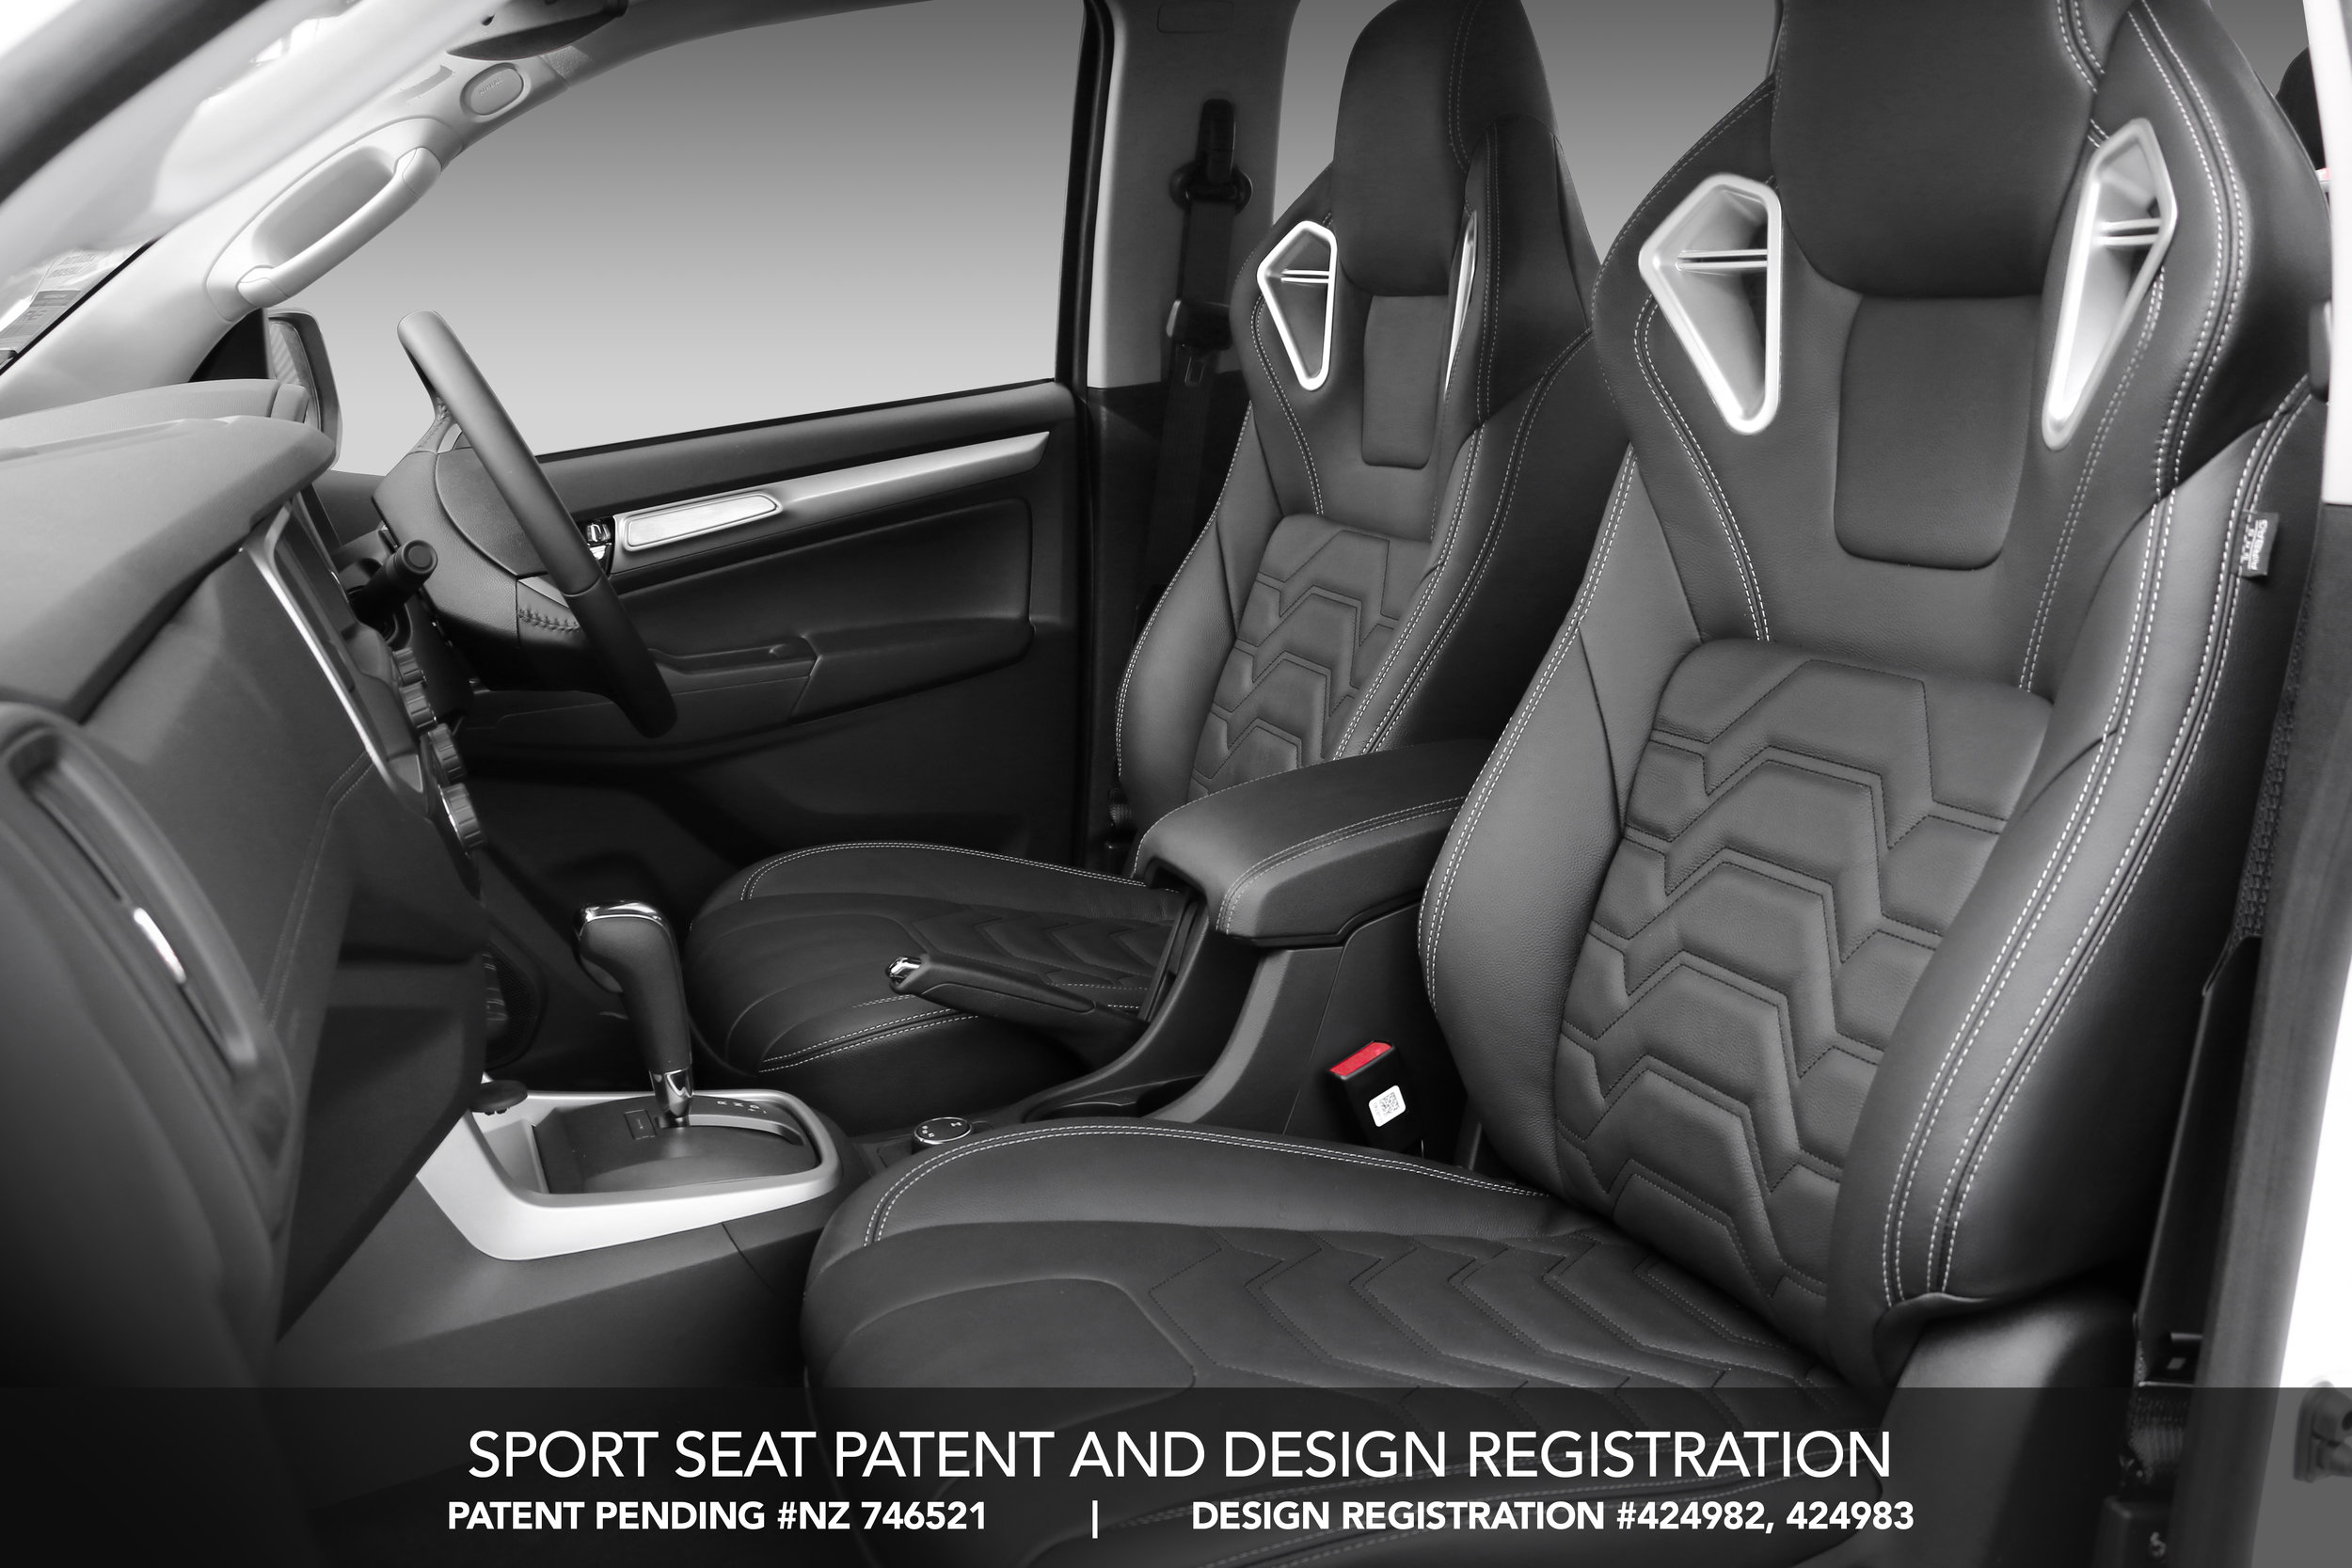 Holden-Colorado-Monza-Front-Seating---with-patent.jpg